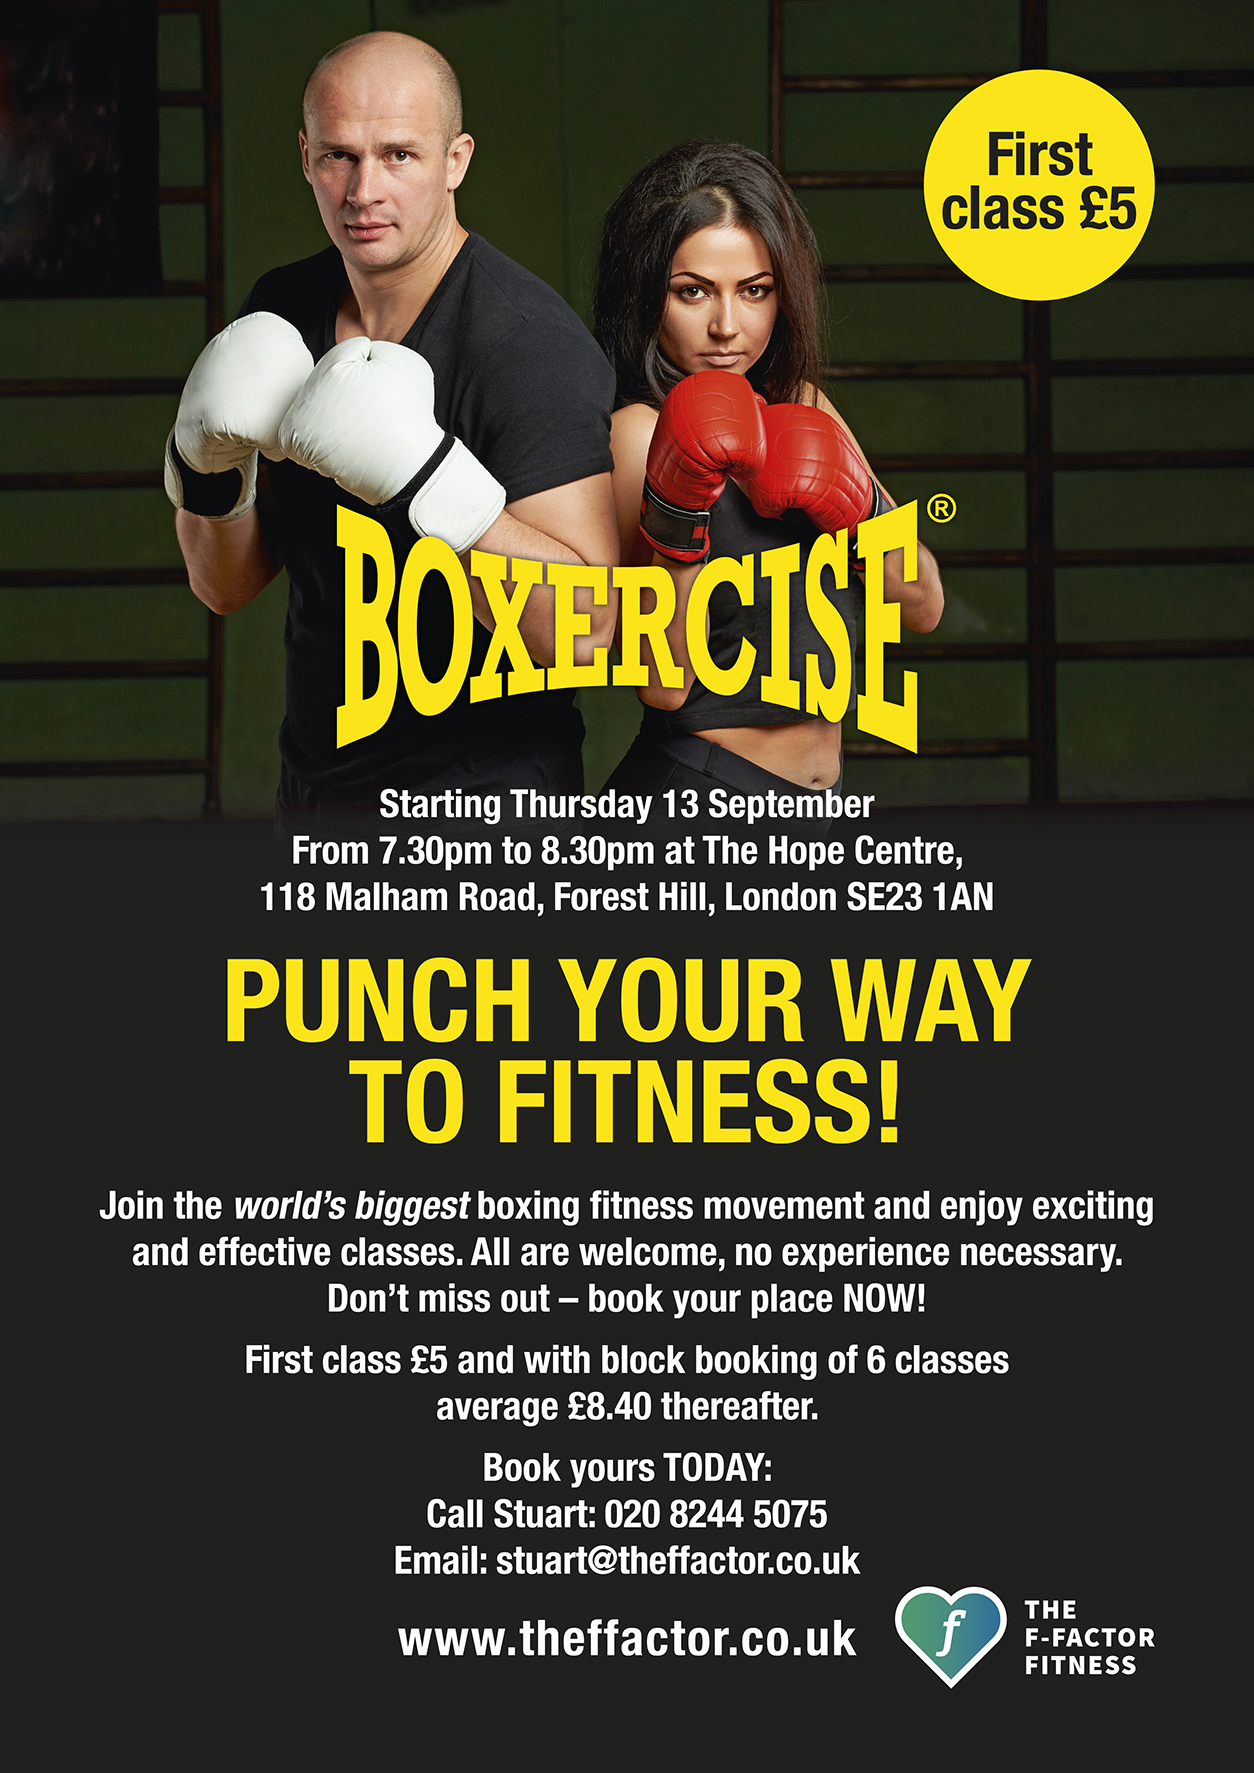 Boxercise A3 poster_Forest Hill_final_02_RGB.jpg